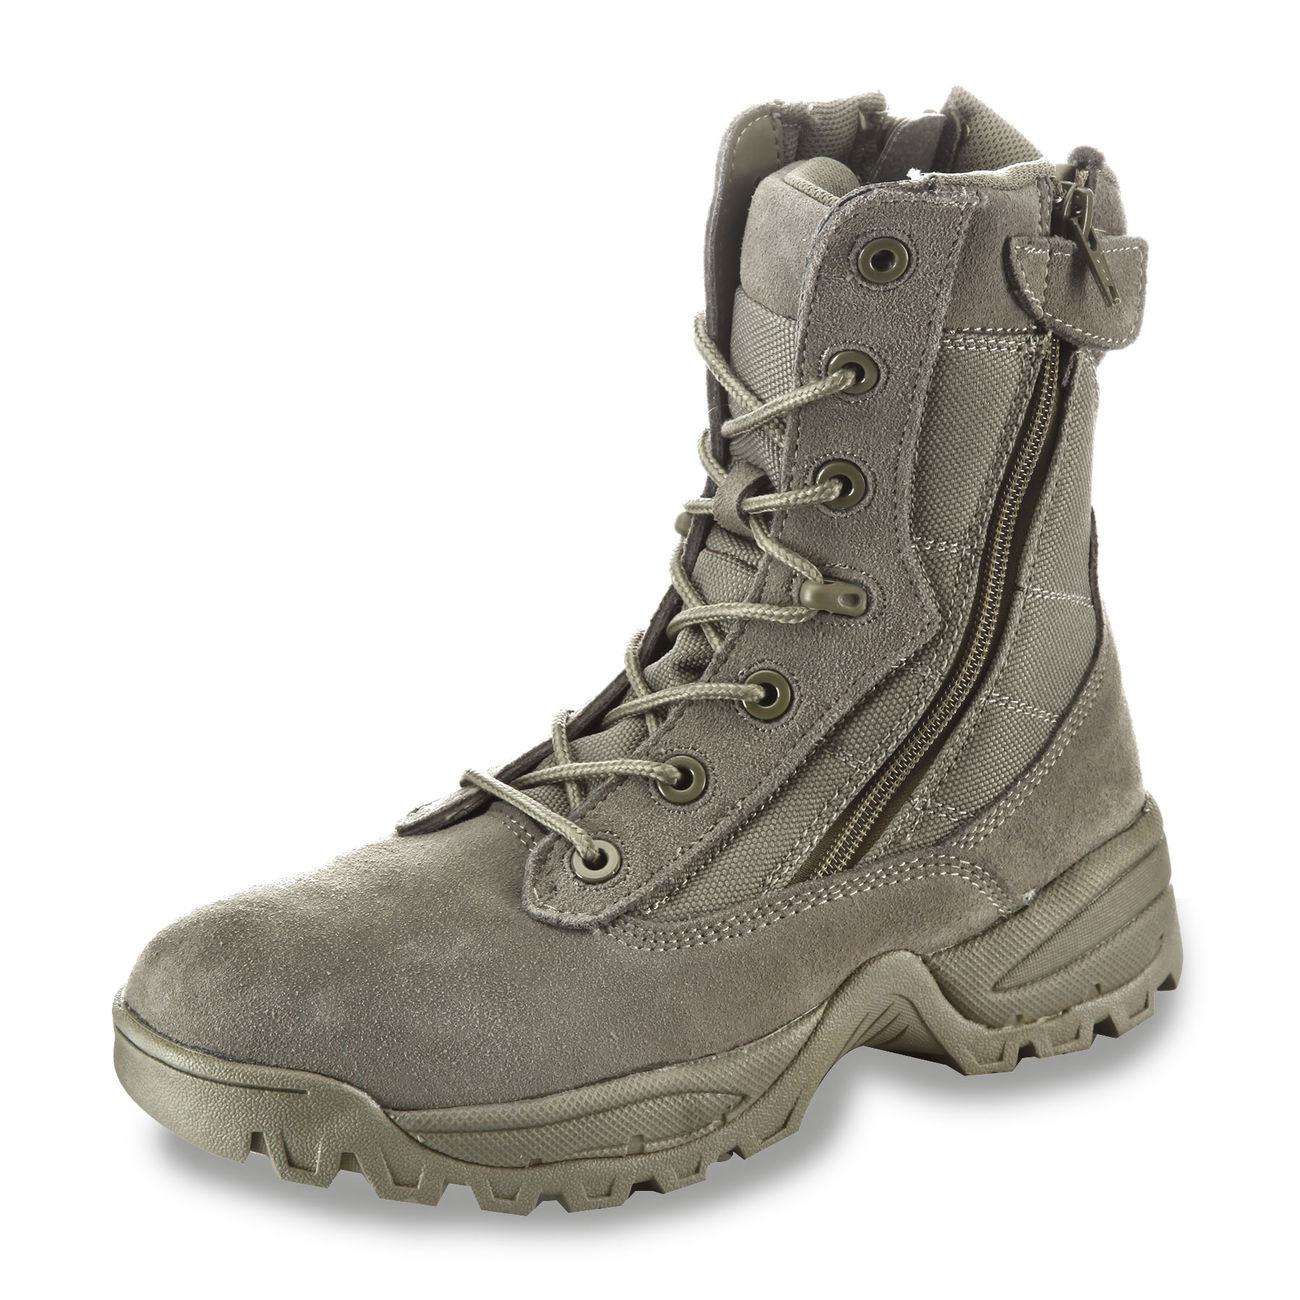 Mil-Tec Tactical Boot Two-Zip foliage 5